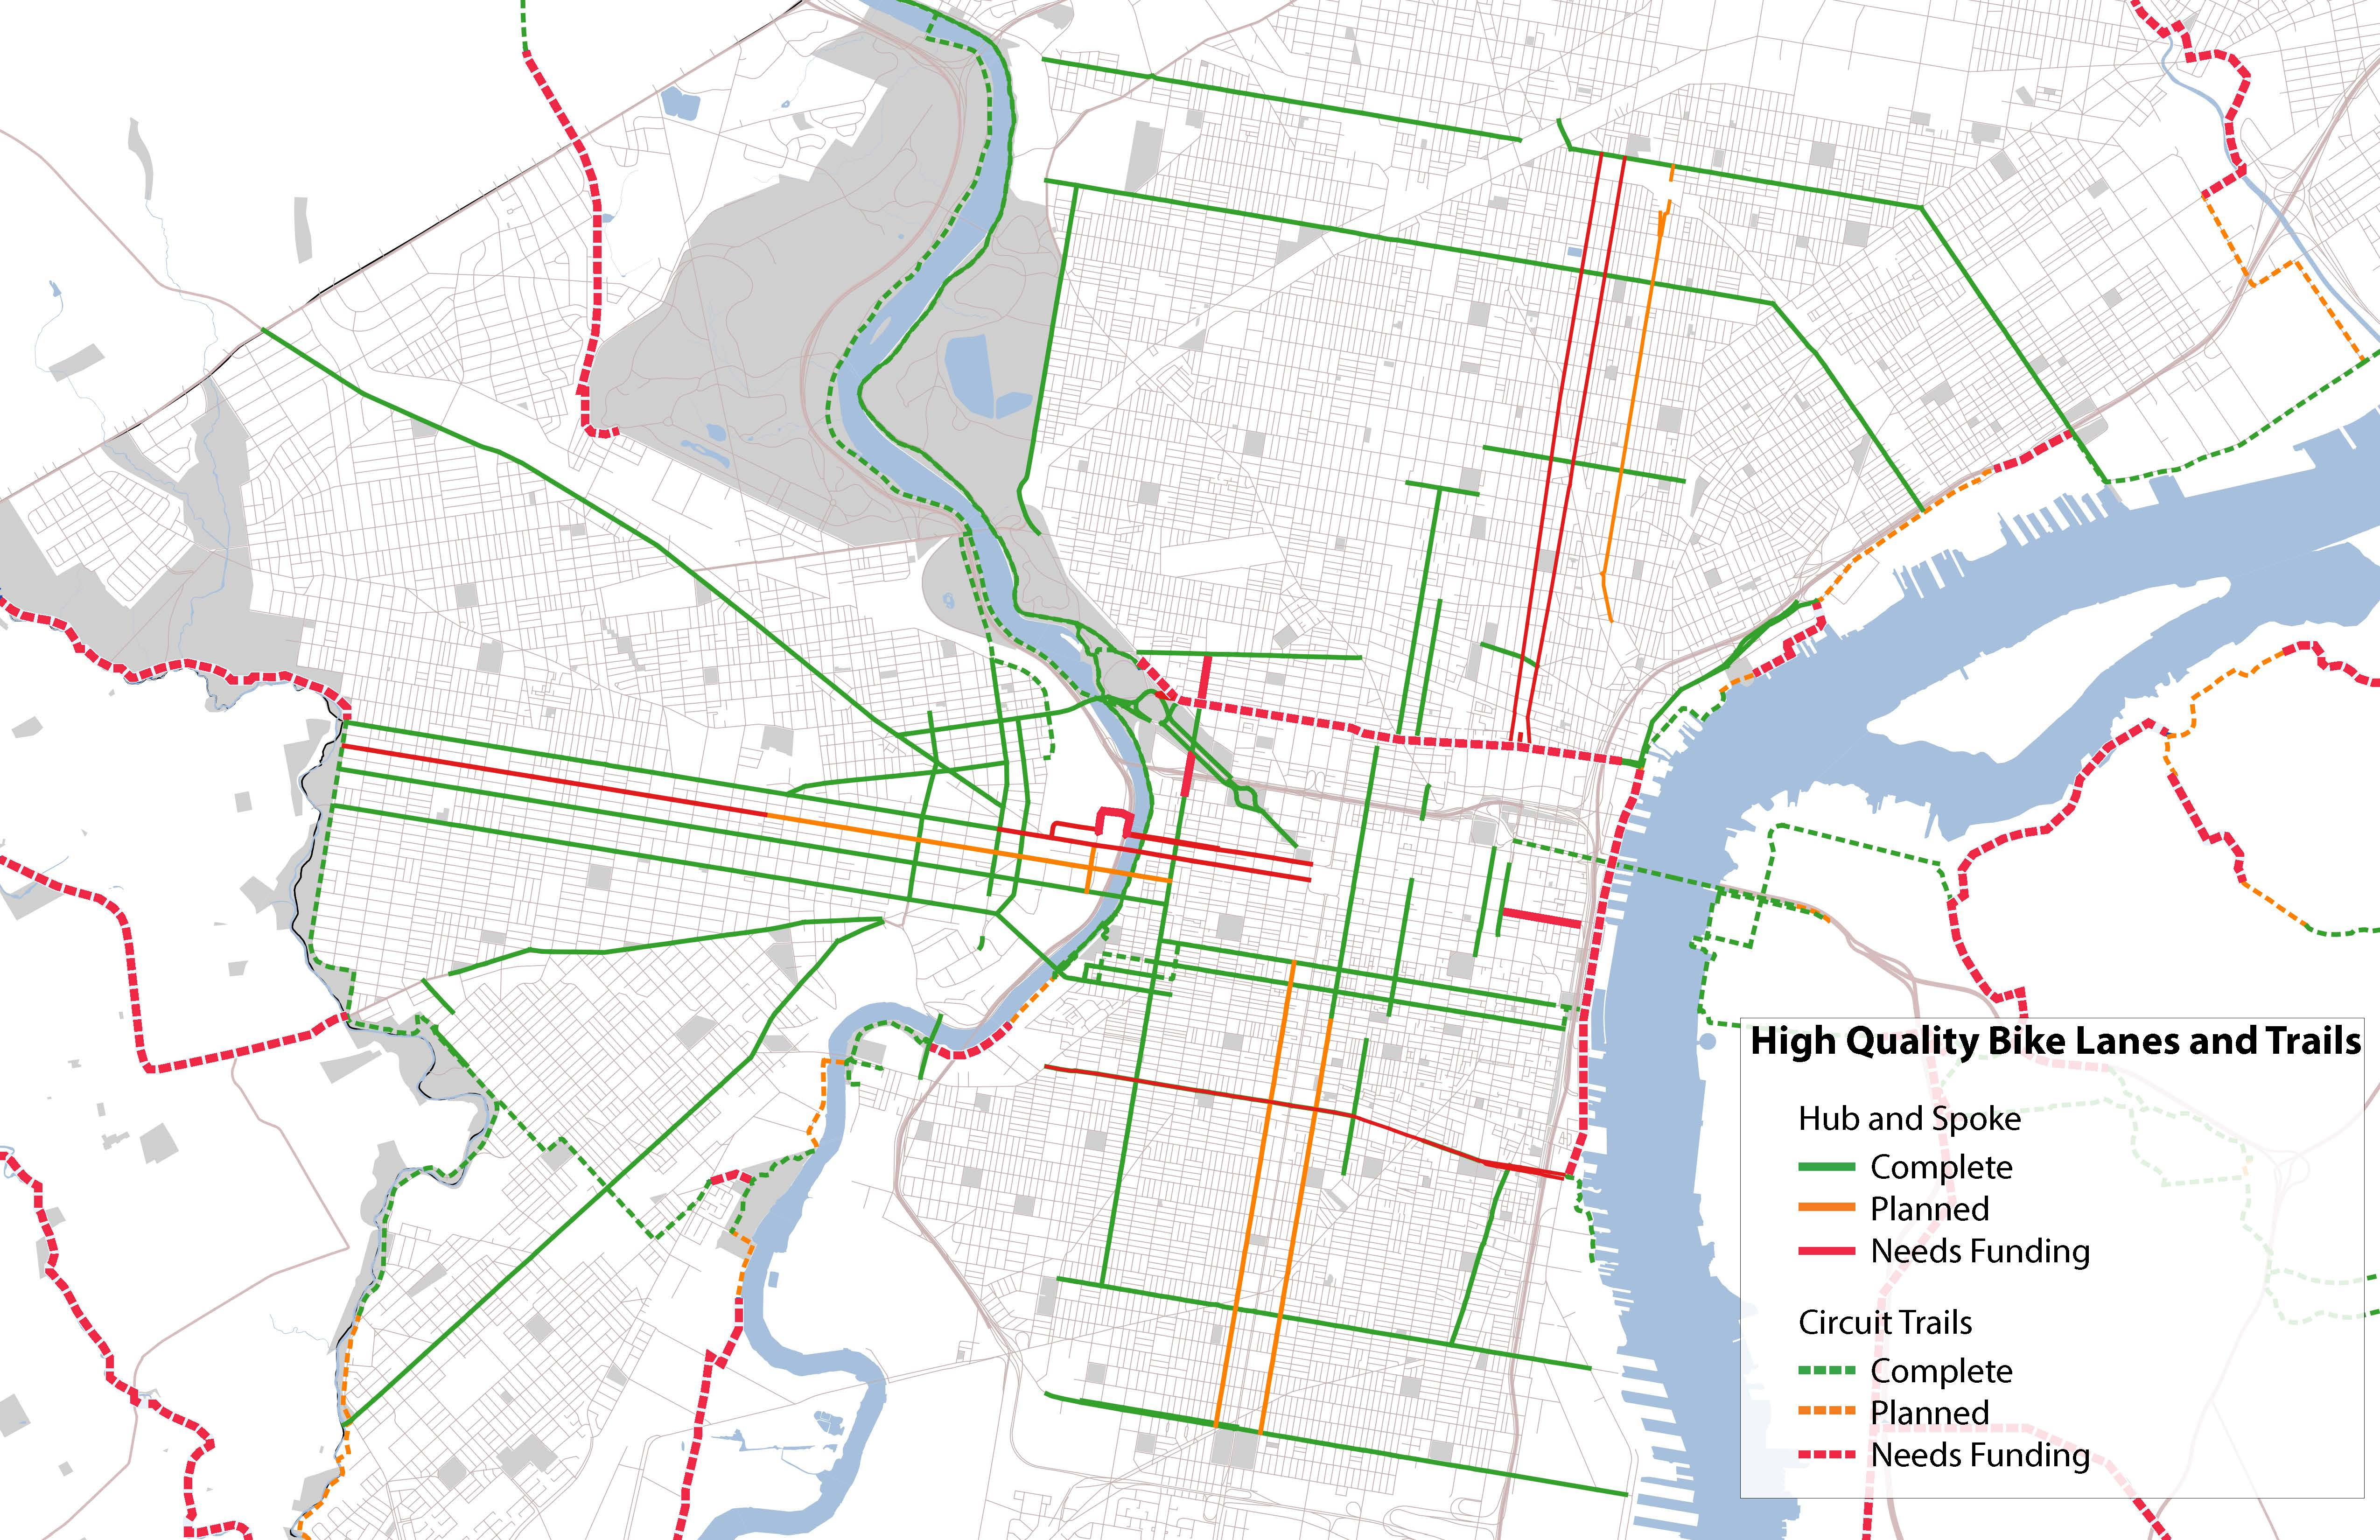 Phila Traffic Map.Hub And Spoke Bicycle Coalition Of Greater Philadelphia